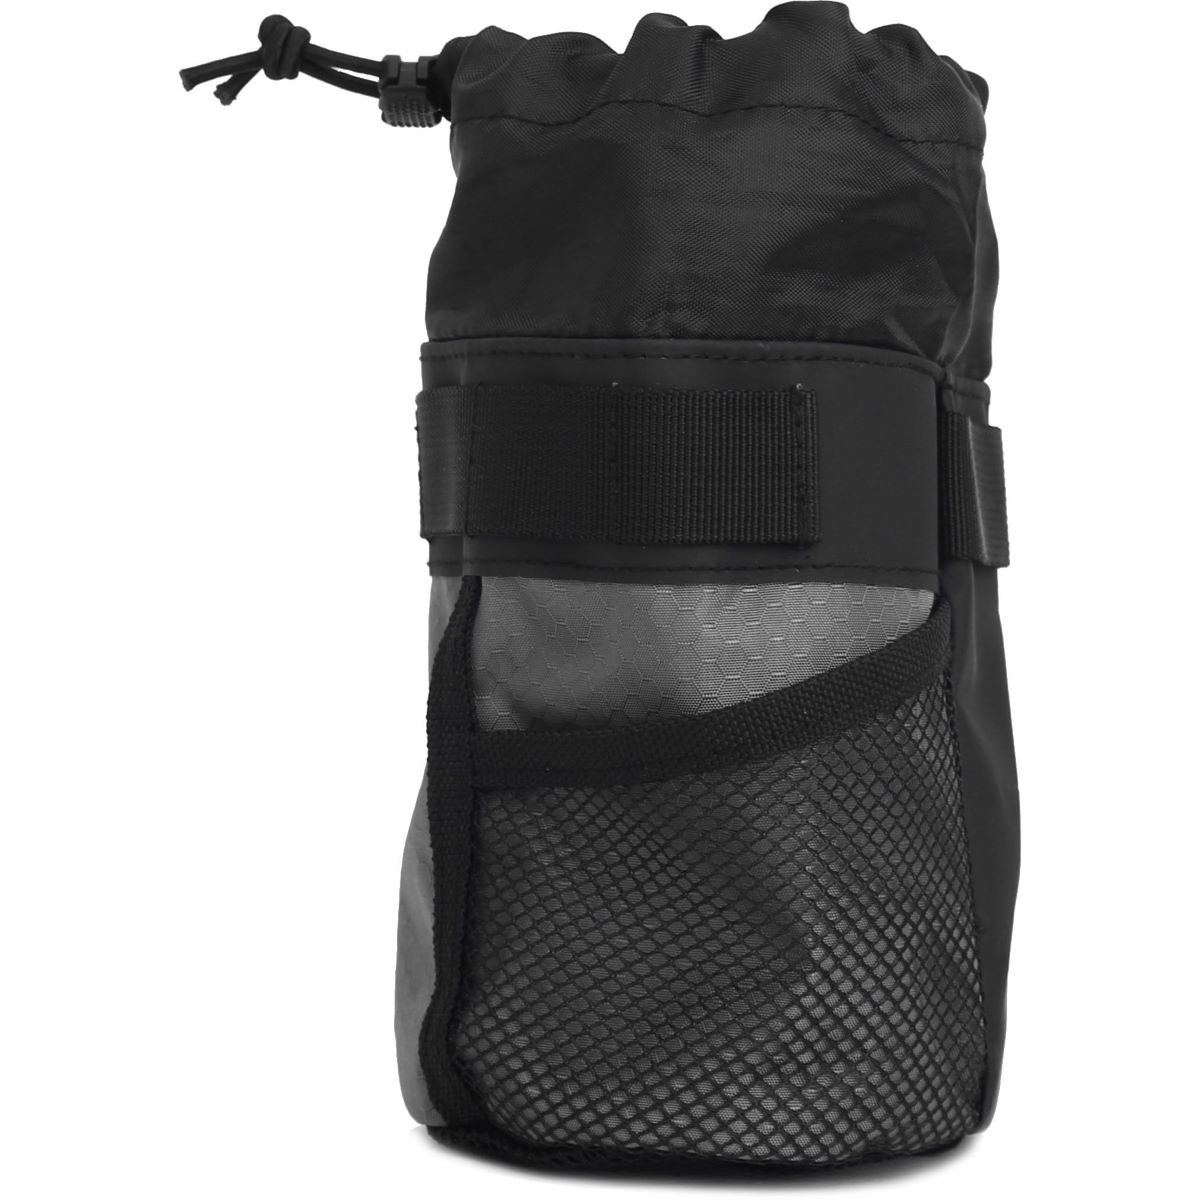 WOHO X-Touring Cup holder   Rack Bags